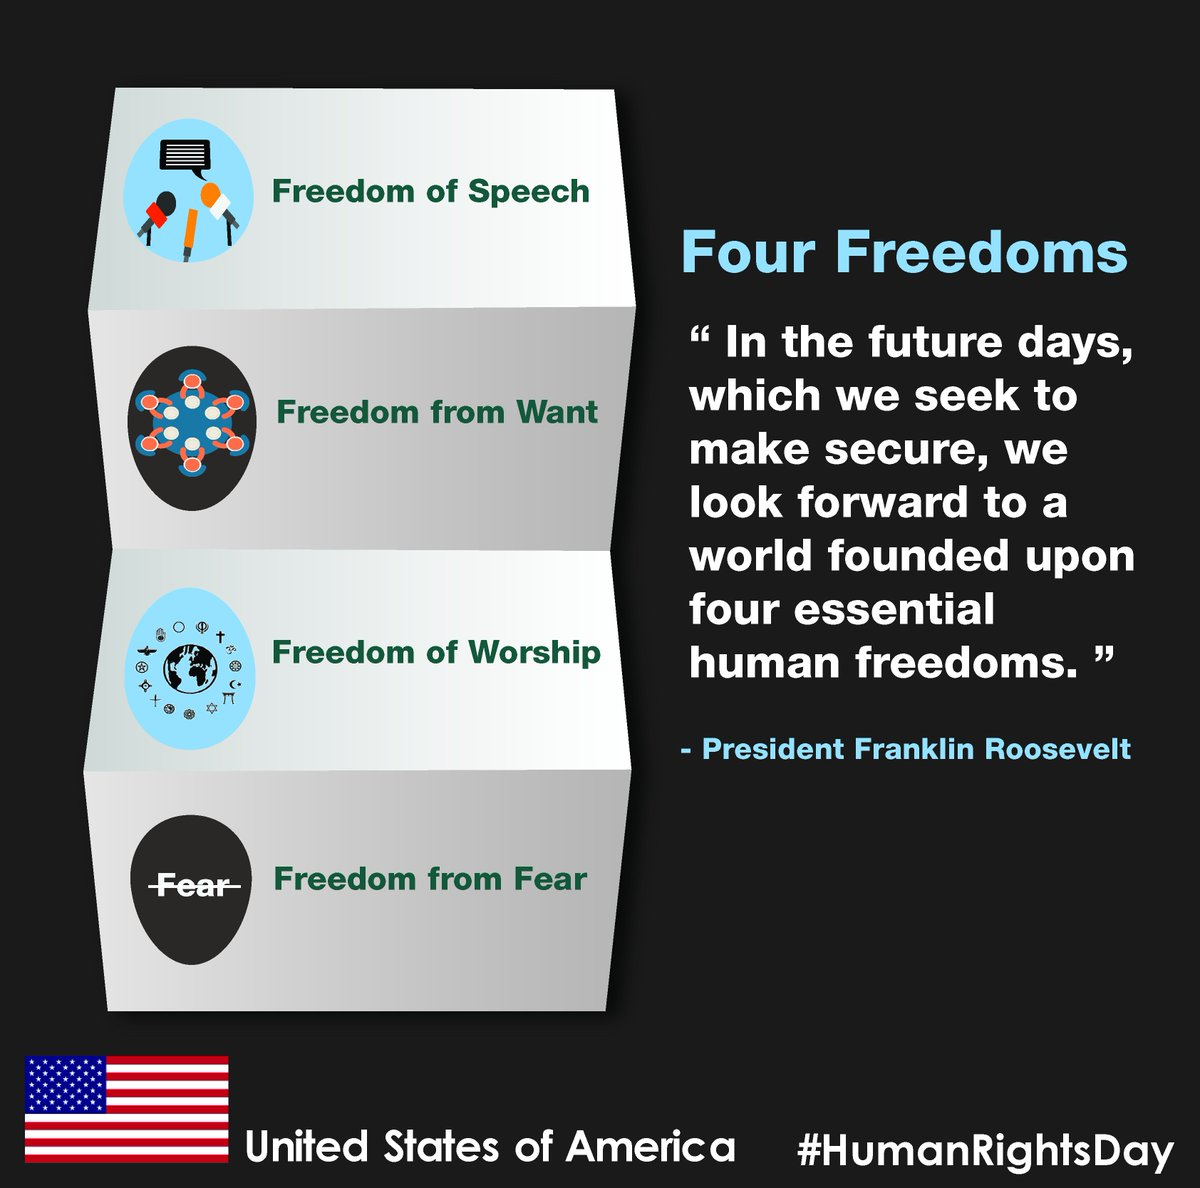 """We look forward to a world founded upon four essential human freedoms..."" - Franklin D. Roosevelt #HumanRightsDay https://t.co/2AFBKiH0lh"